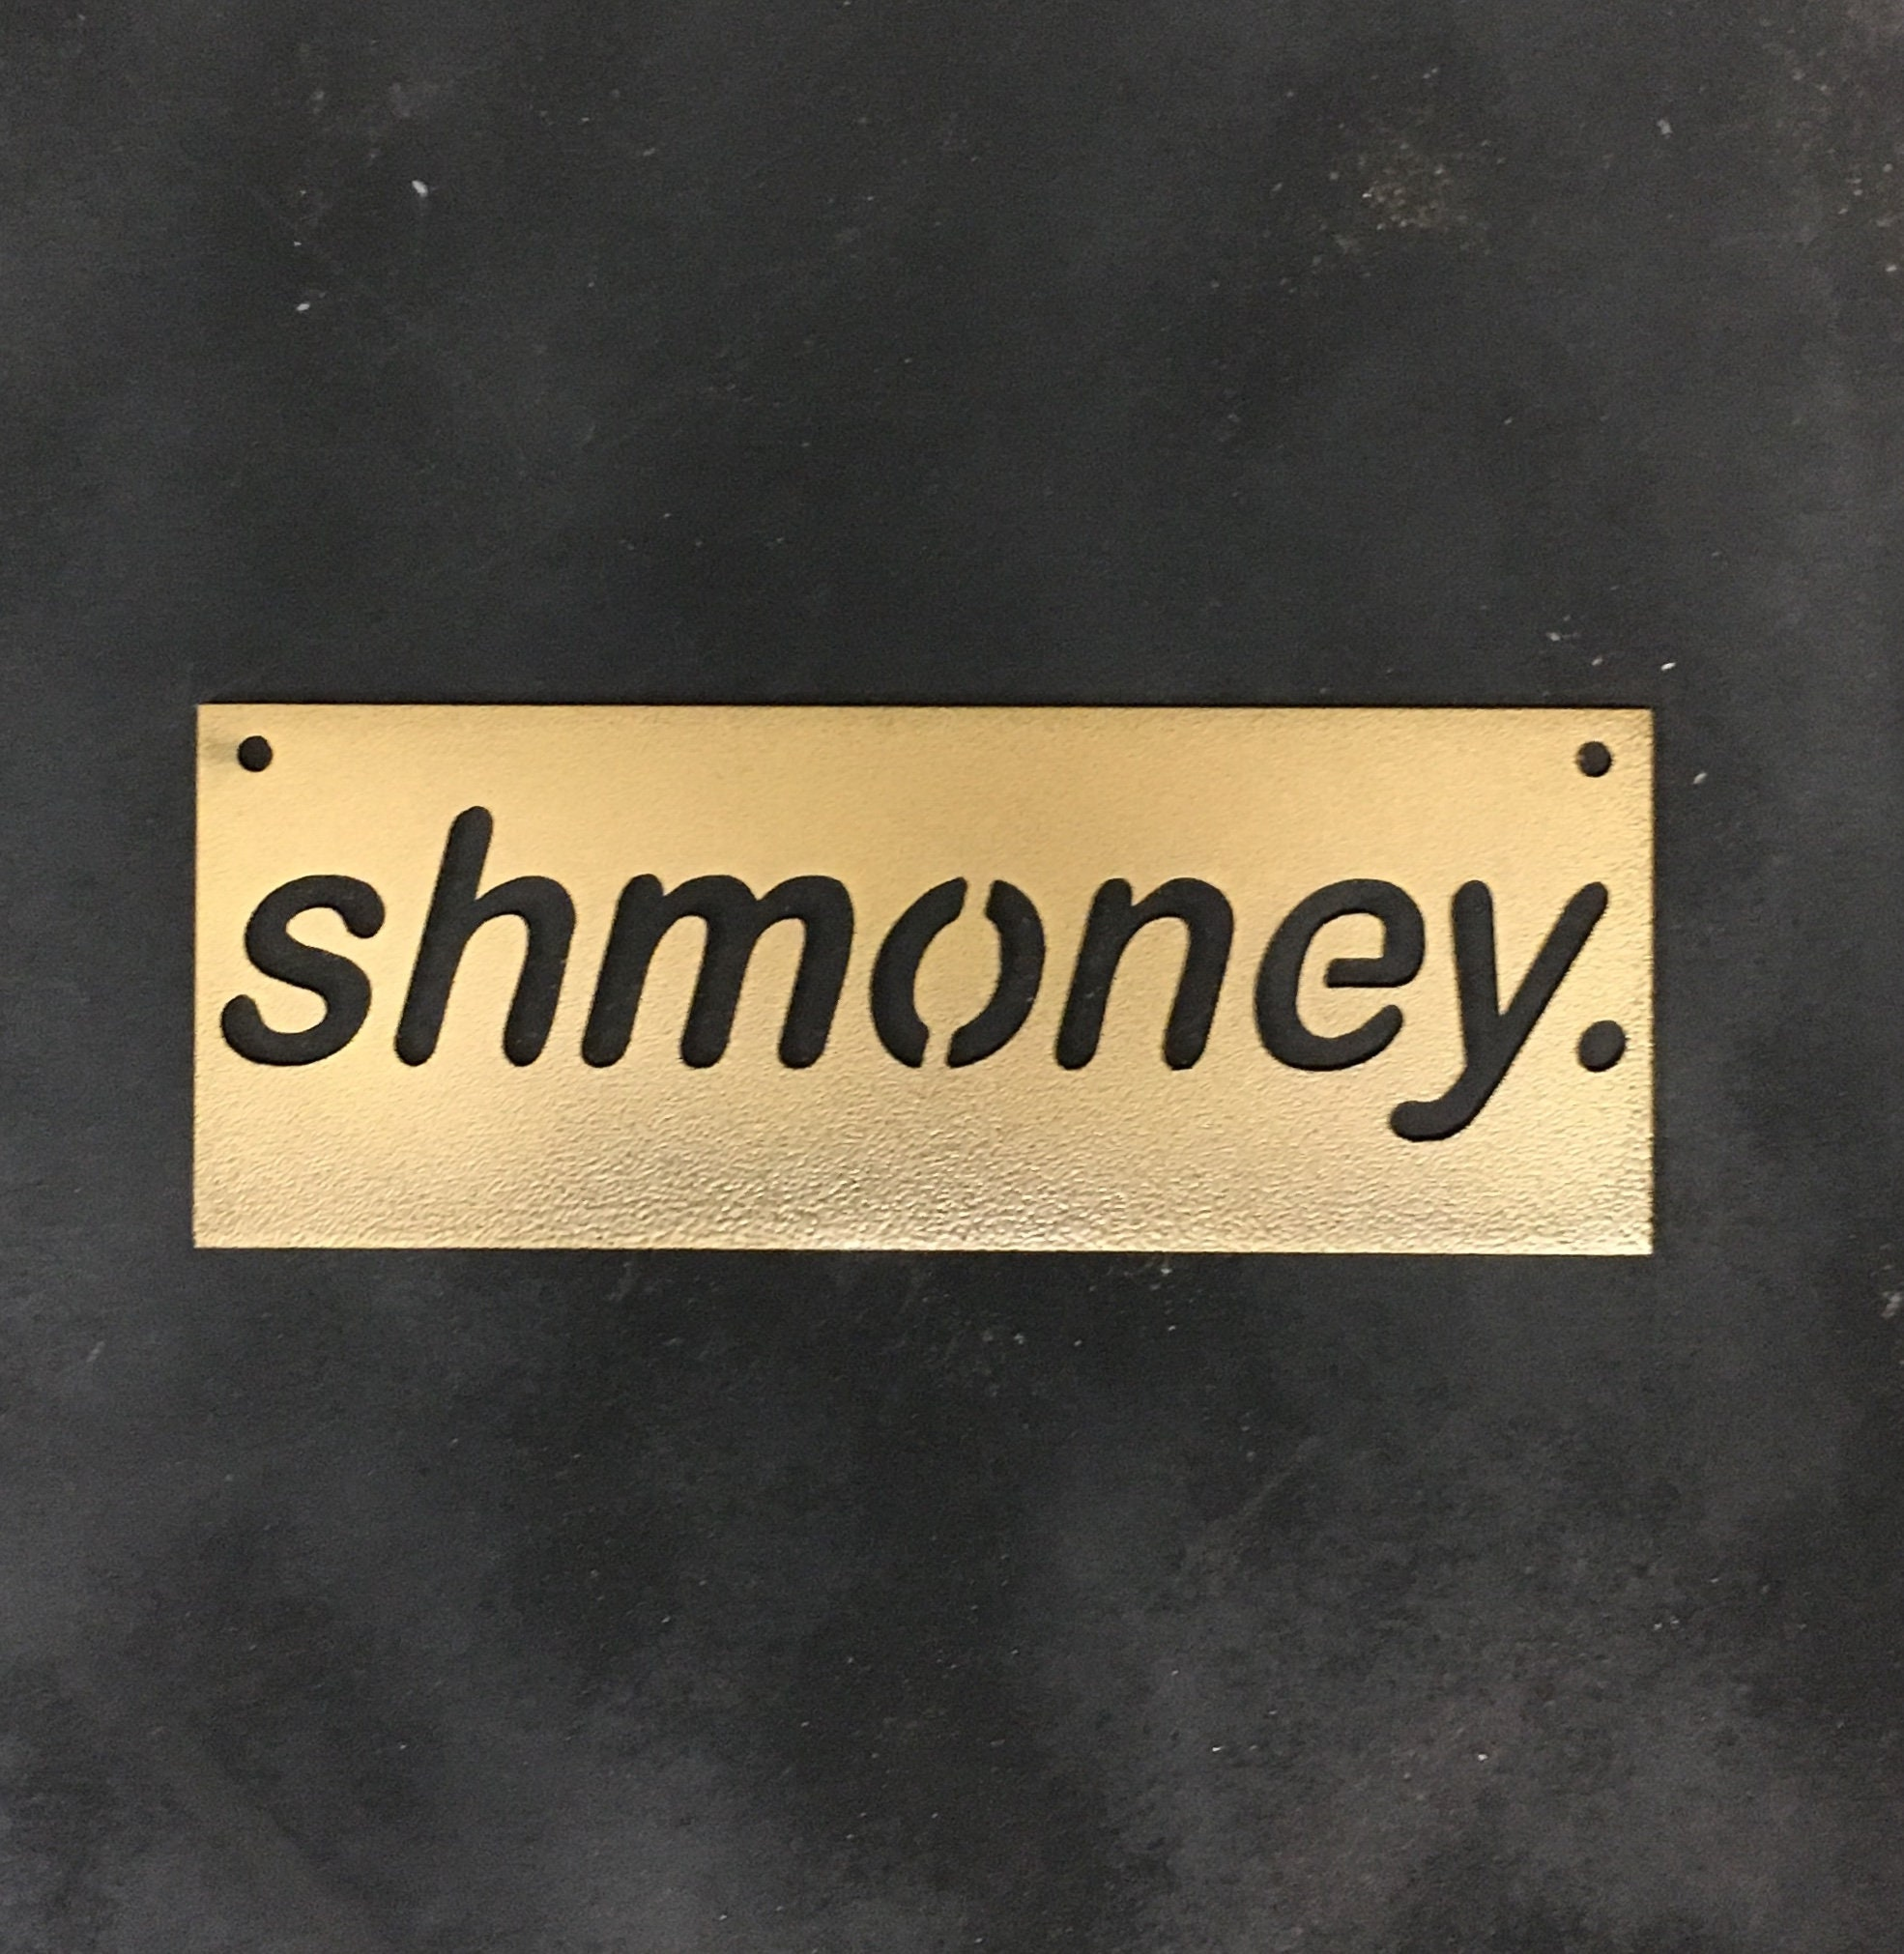 Shmoney Quotes Metal signs Home decor Metal wall art | Etsy